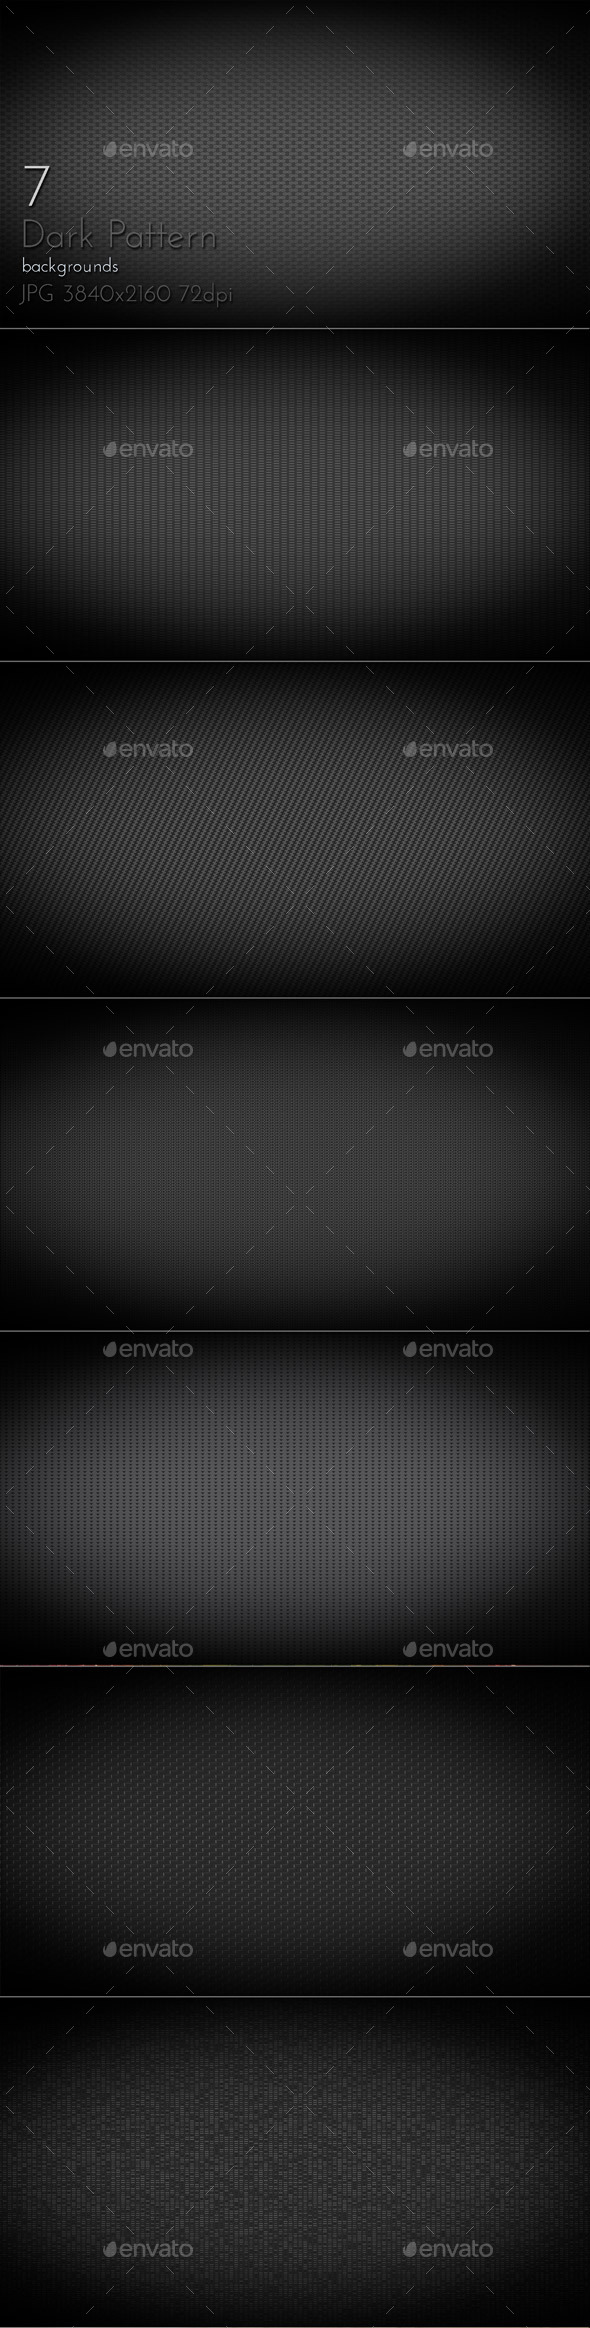 Dark Pattern - Patterns Backgrounds